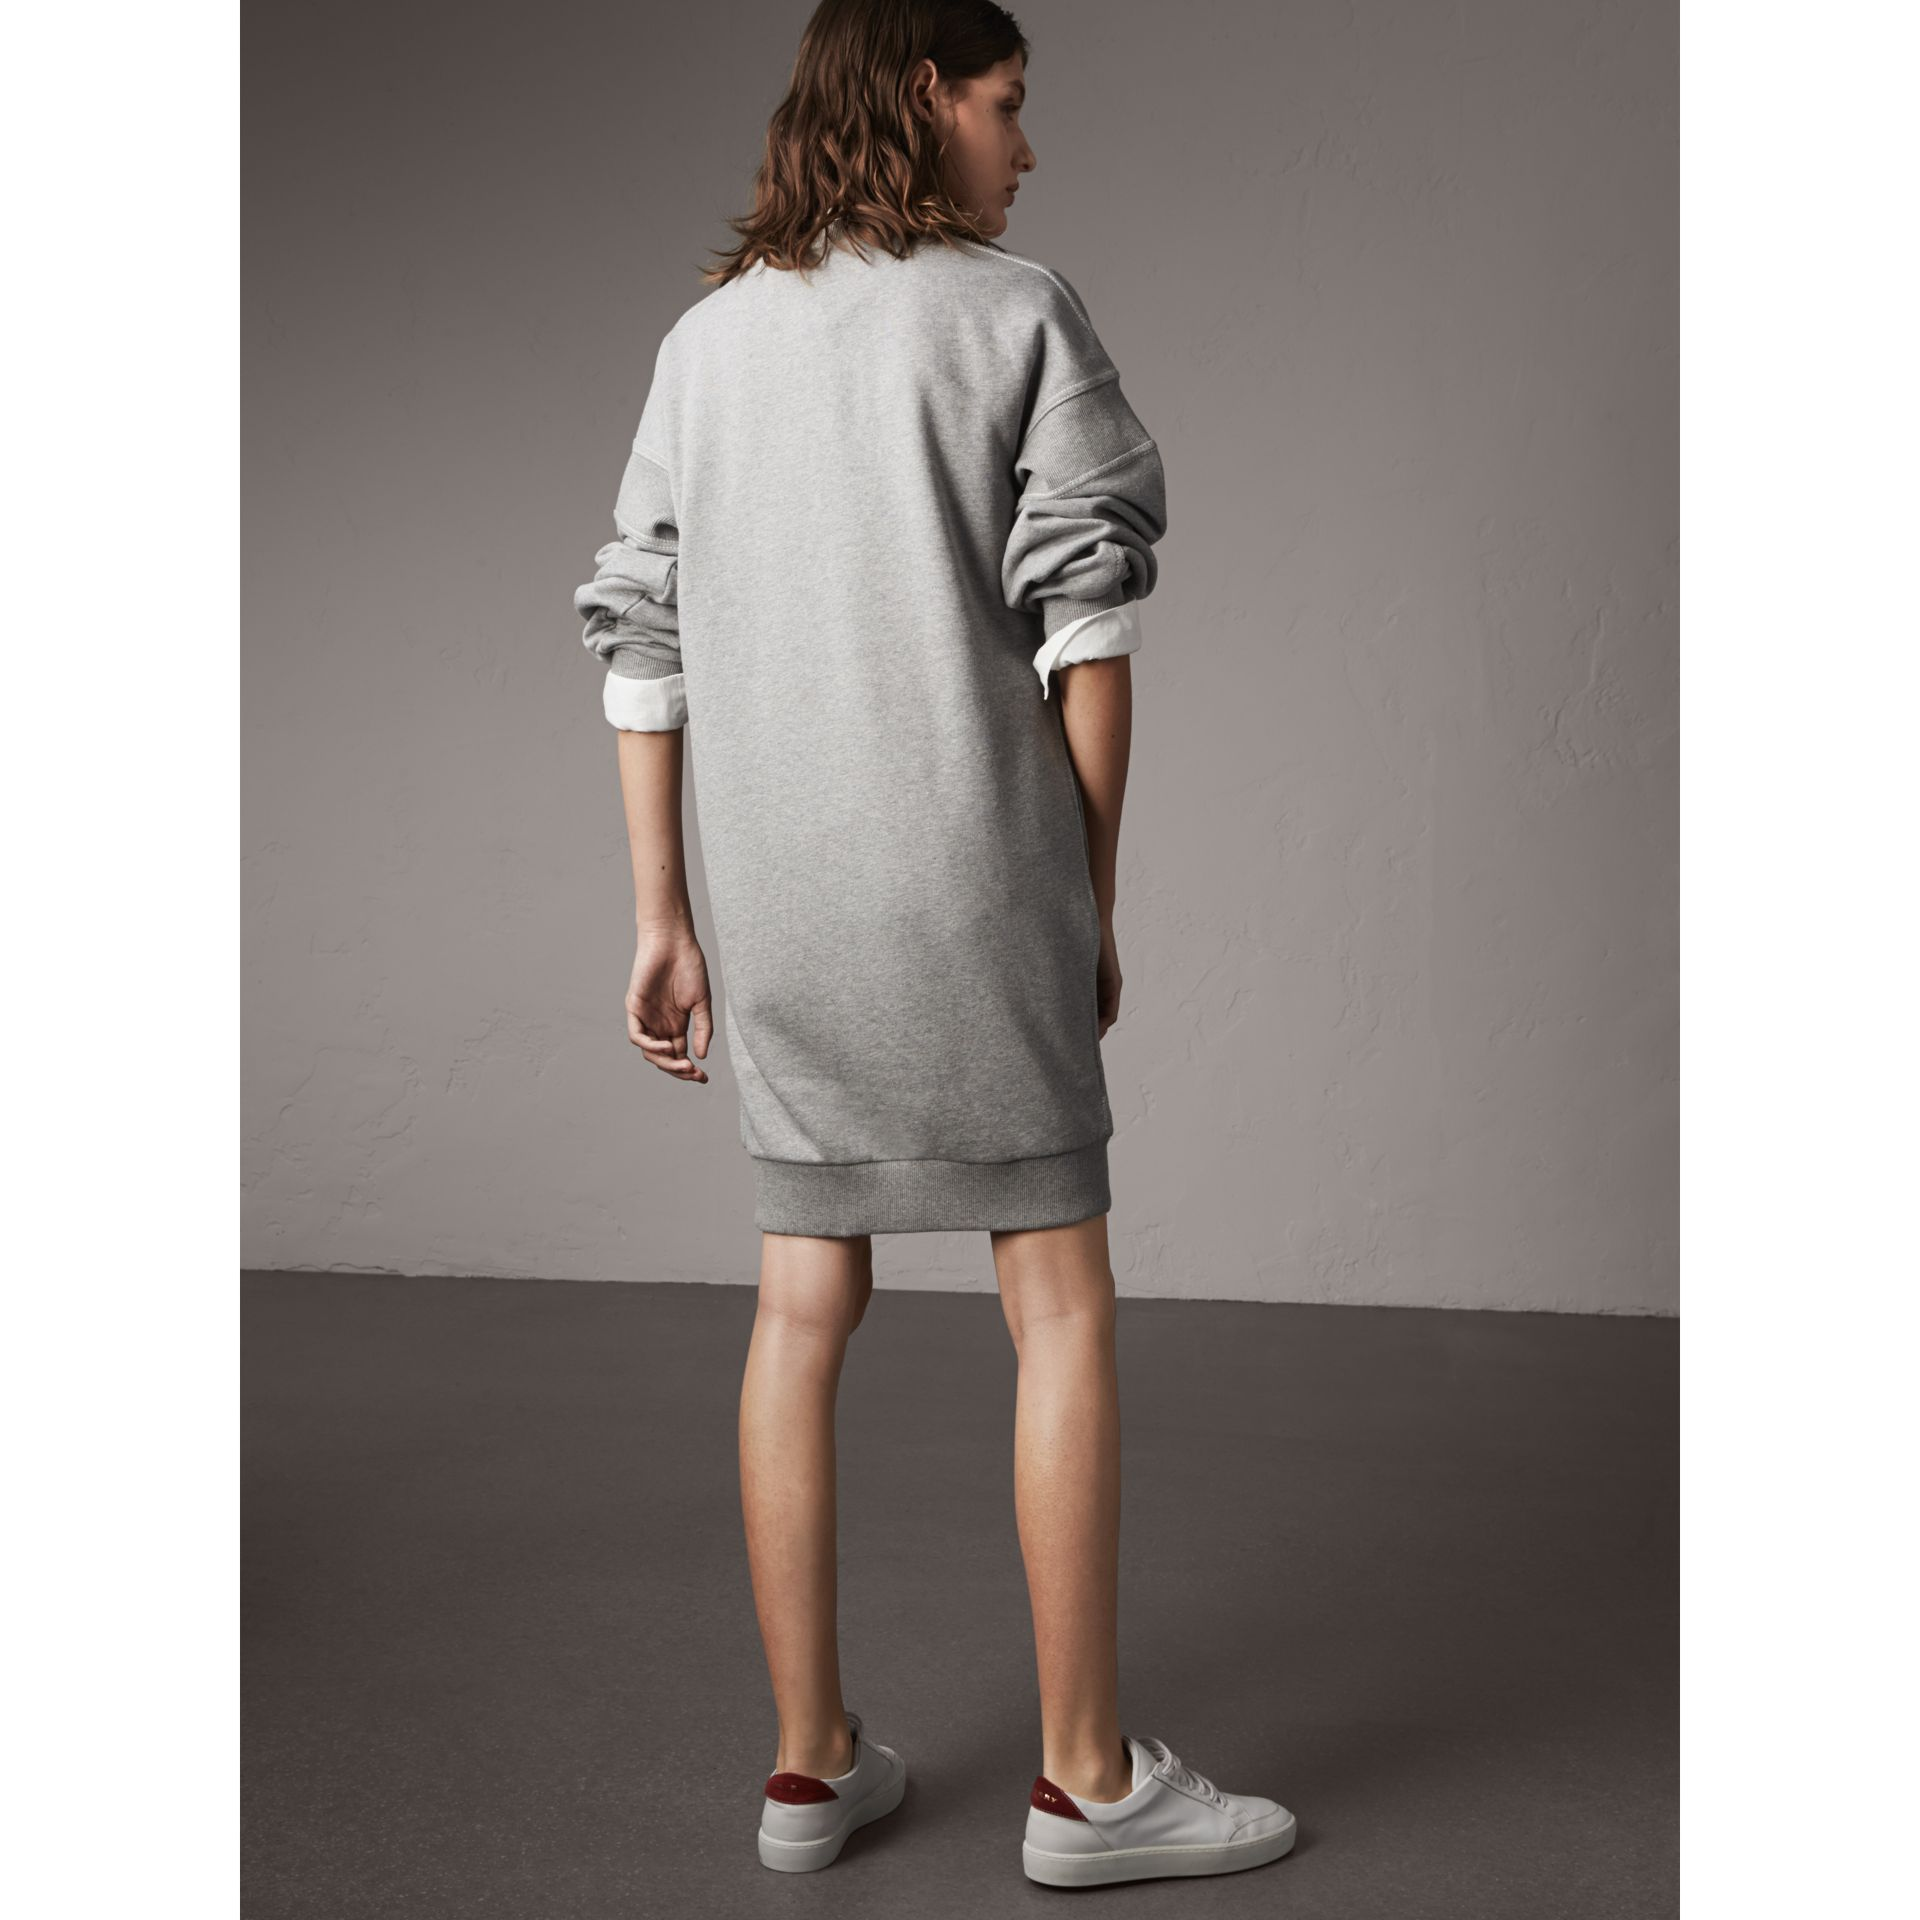 Embroidered Motif Cotton Jersey Sweatshirt Dress in Pale Grey Melange - Women | Burberry - gallery image 3